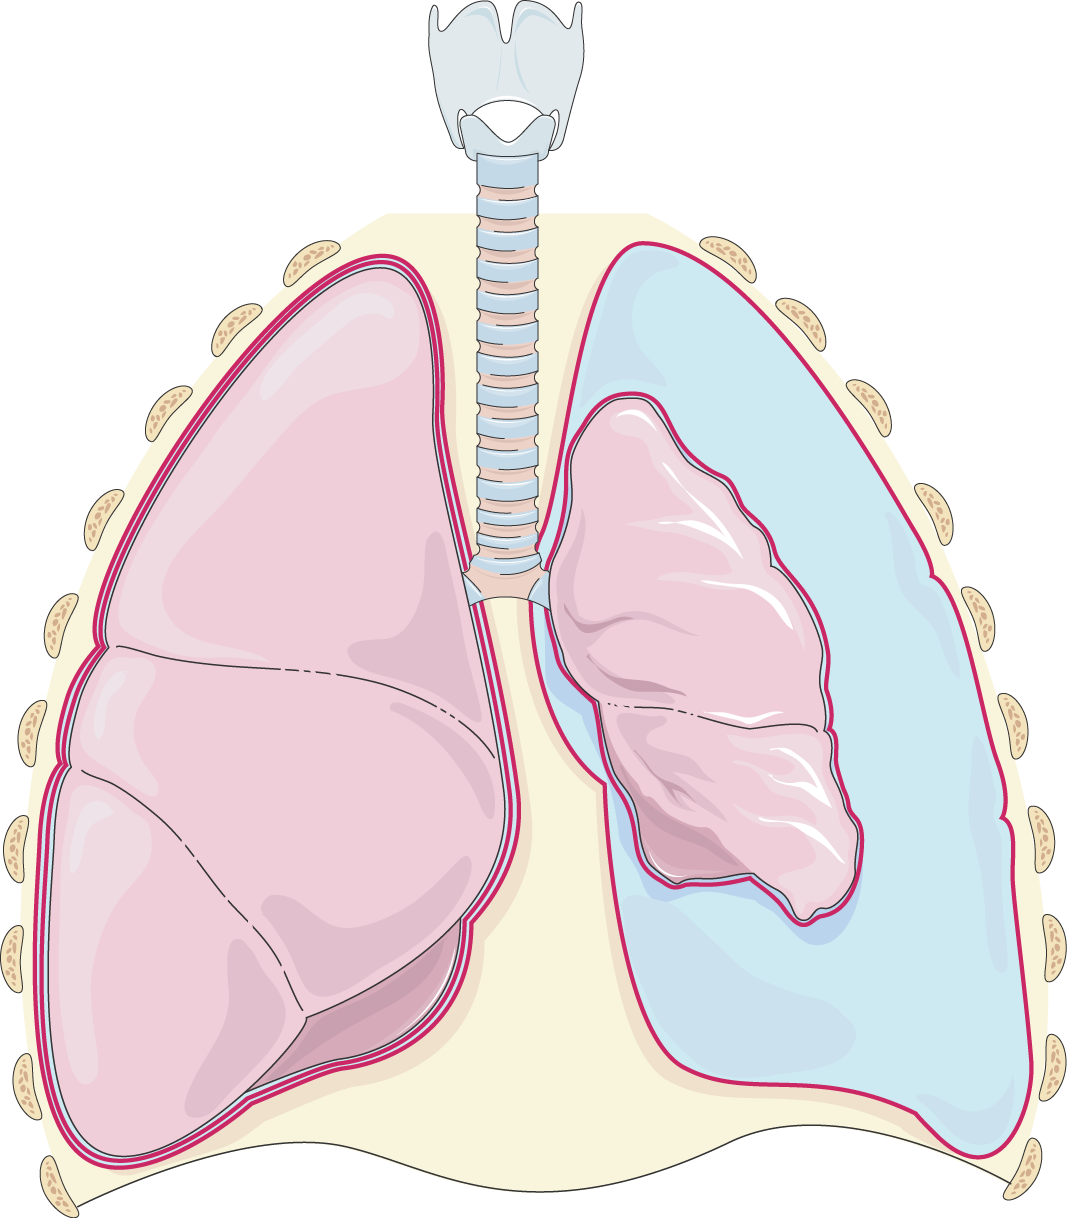 Lungs clipart chronic bronchitis. Archives servier medical art